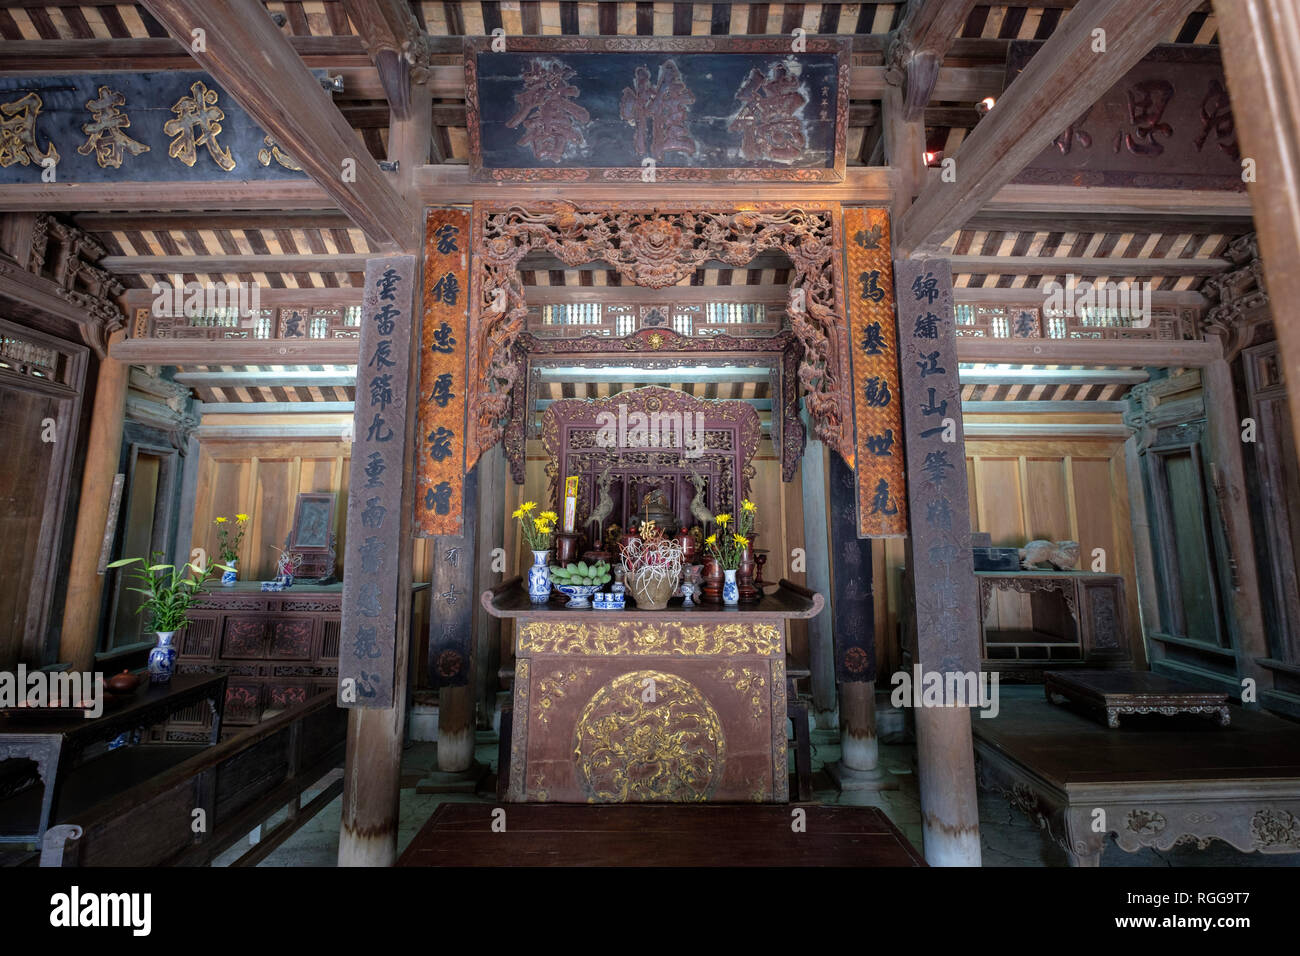 Vietnam Museum of Ethnology in Hanoi, Vietnam, Southeast Asia - Stock Image